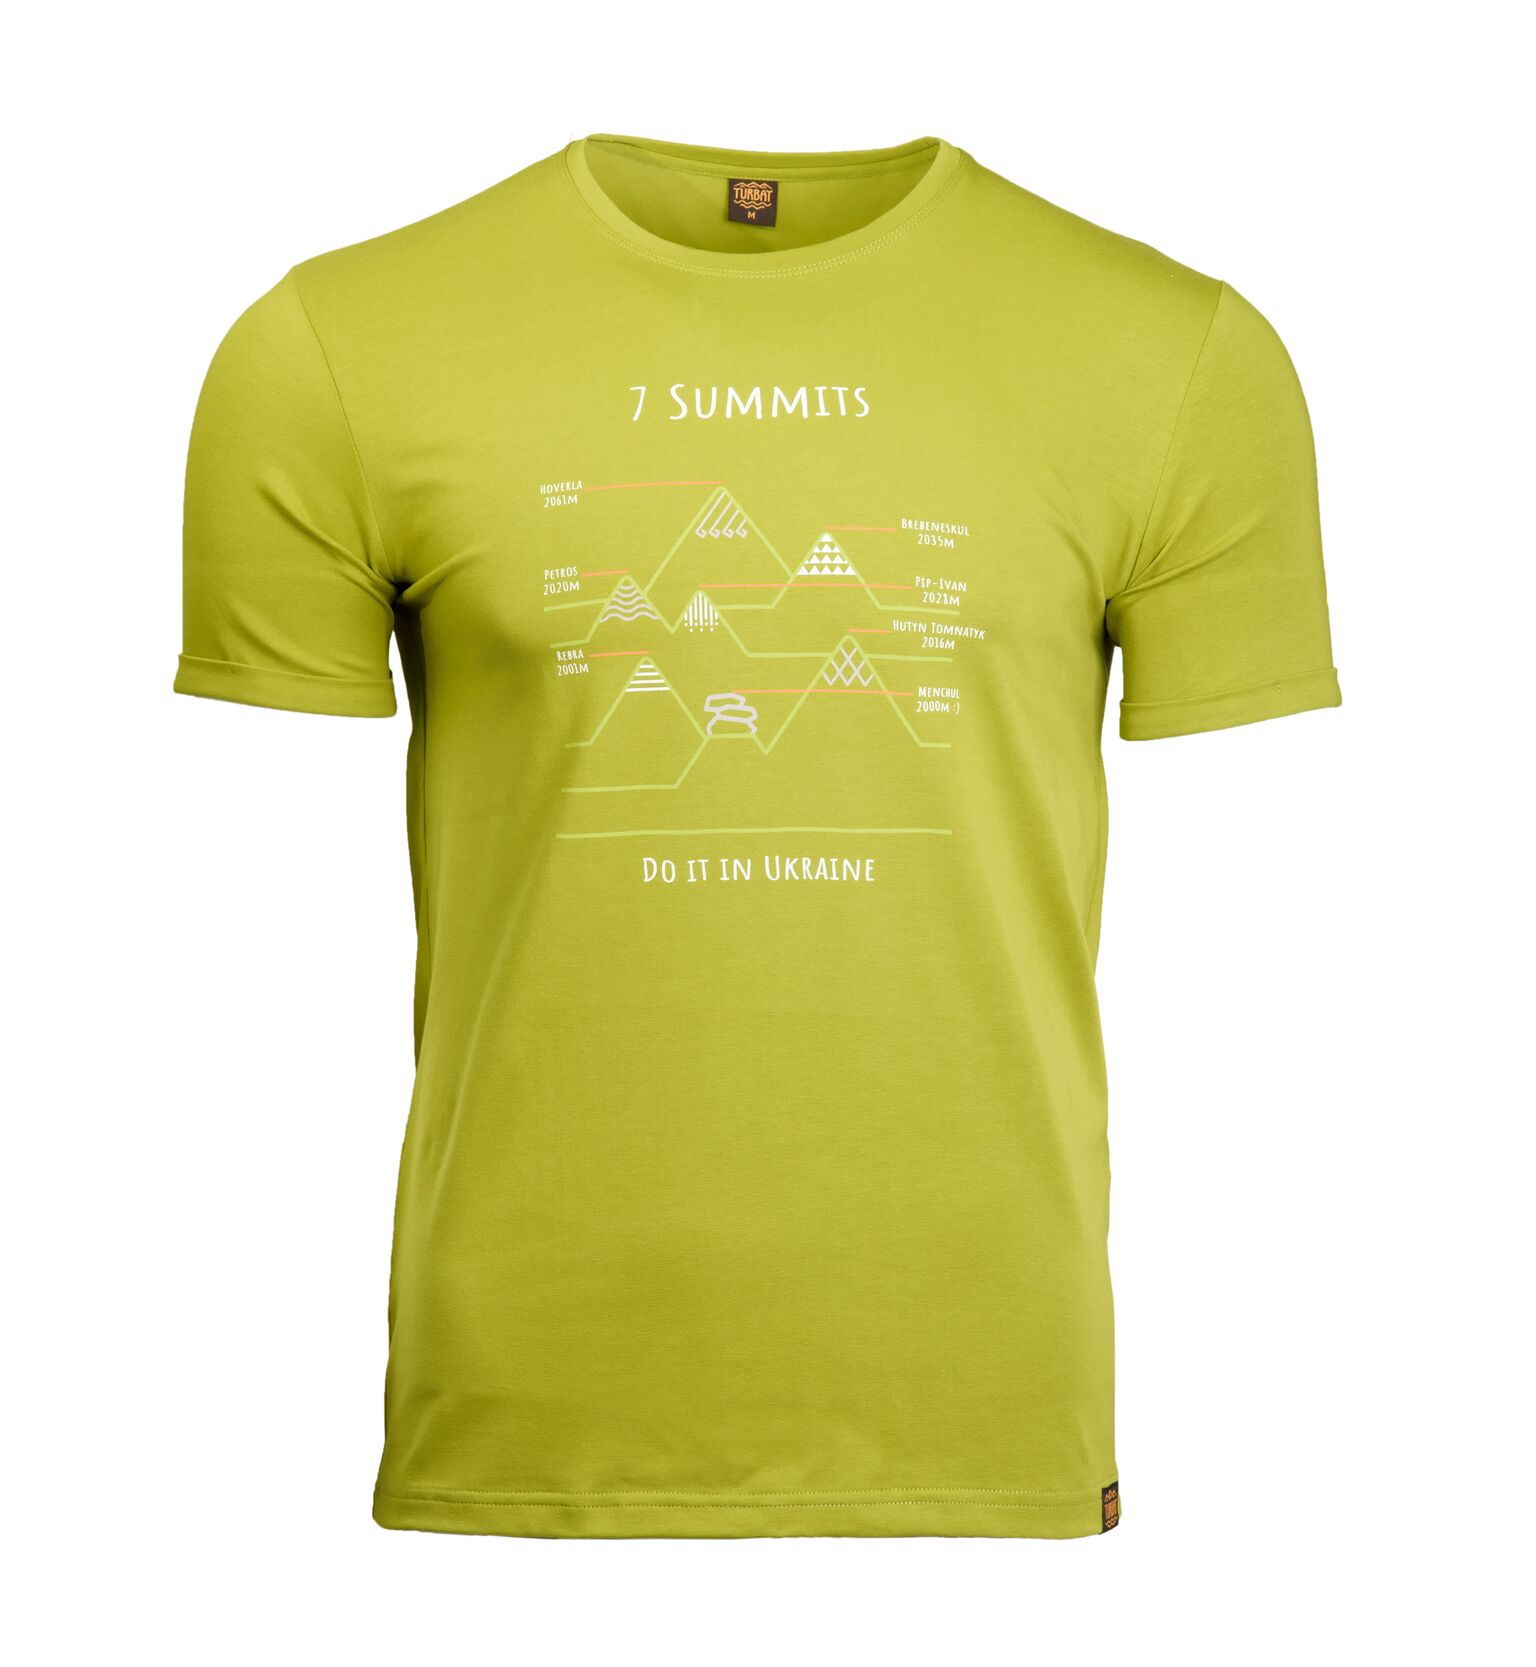 Turbat 7 Summits men's T-shirt